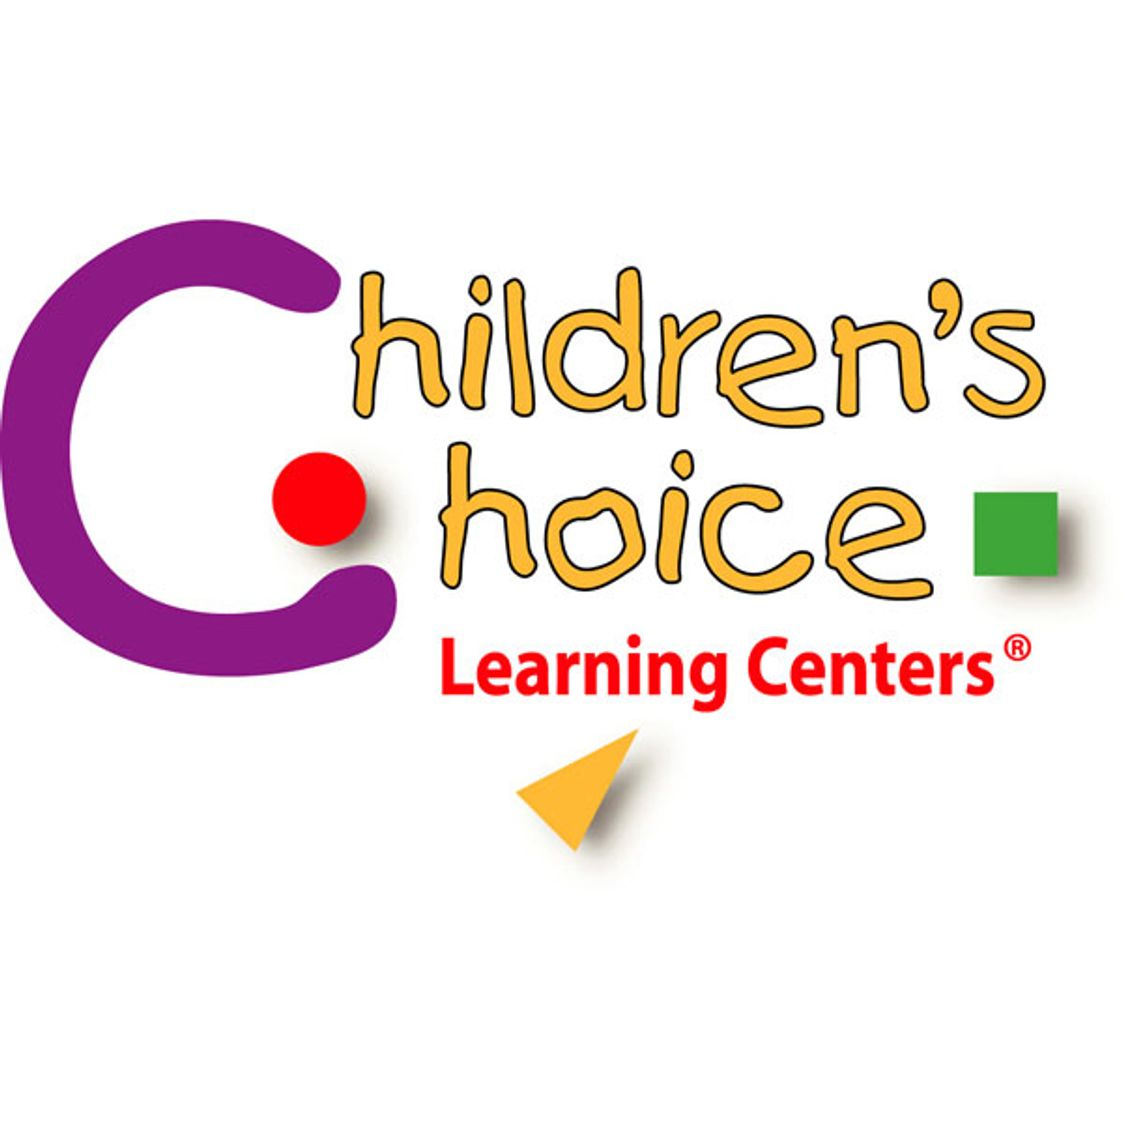 Childrens Choice Learning Center Photo #1 - Children's Choice Learning Centers